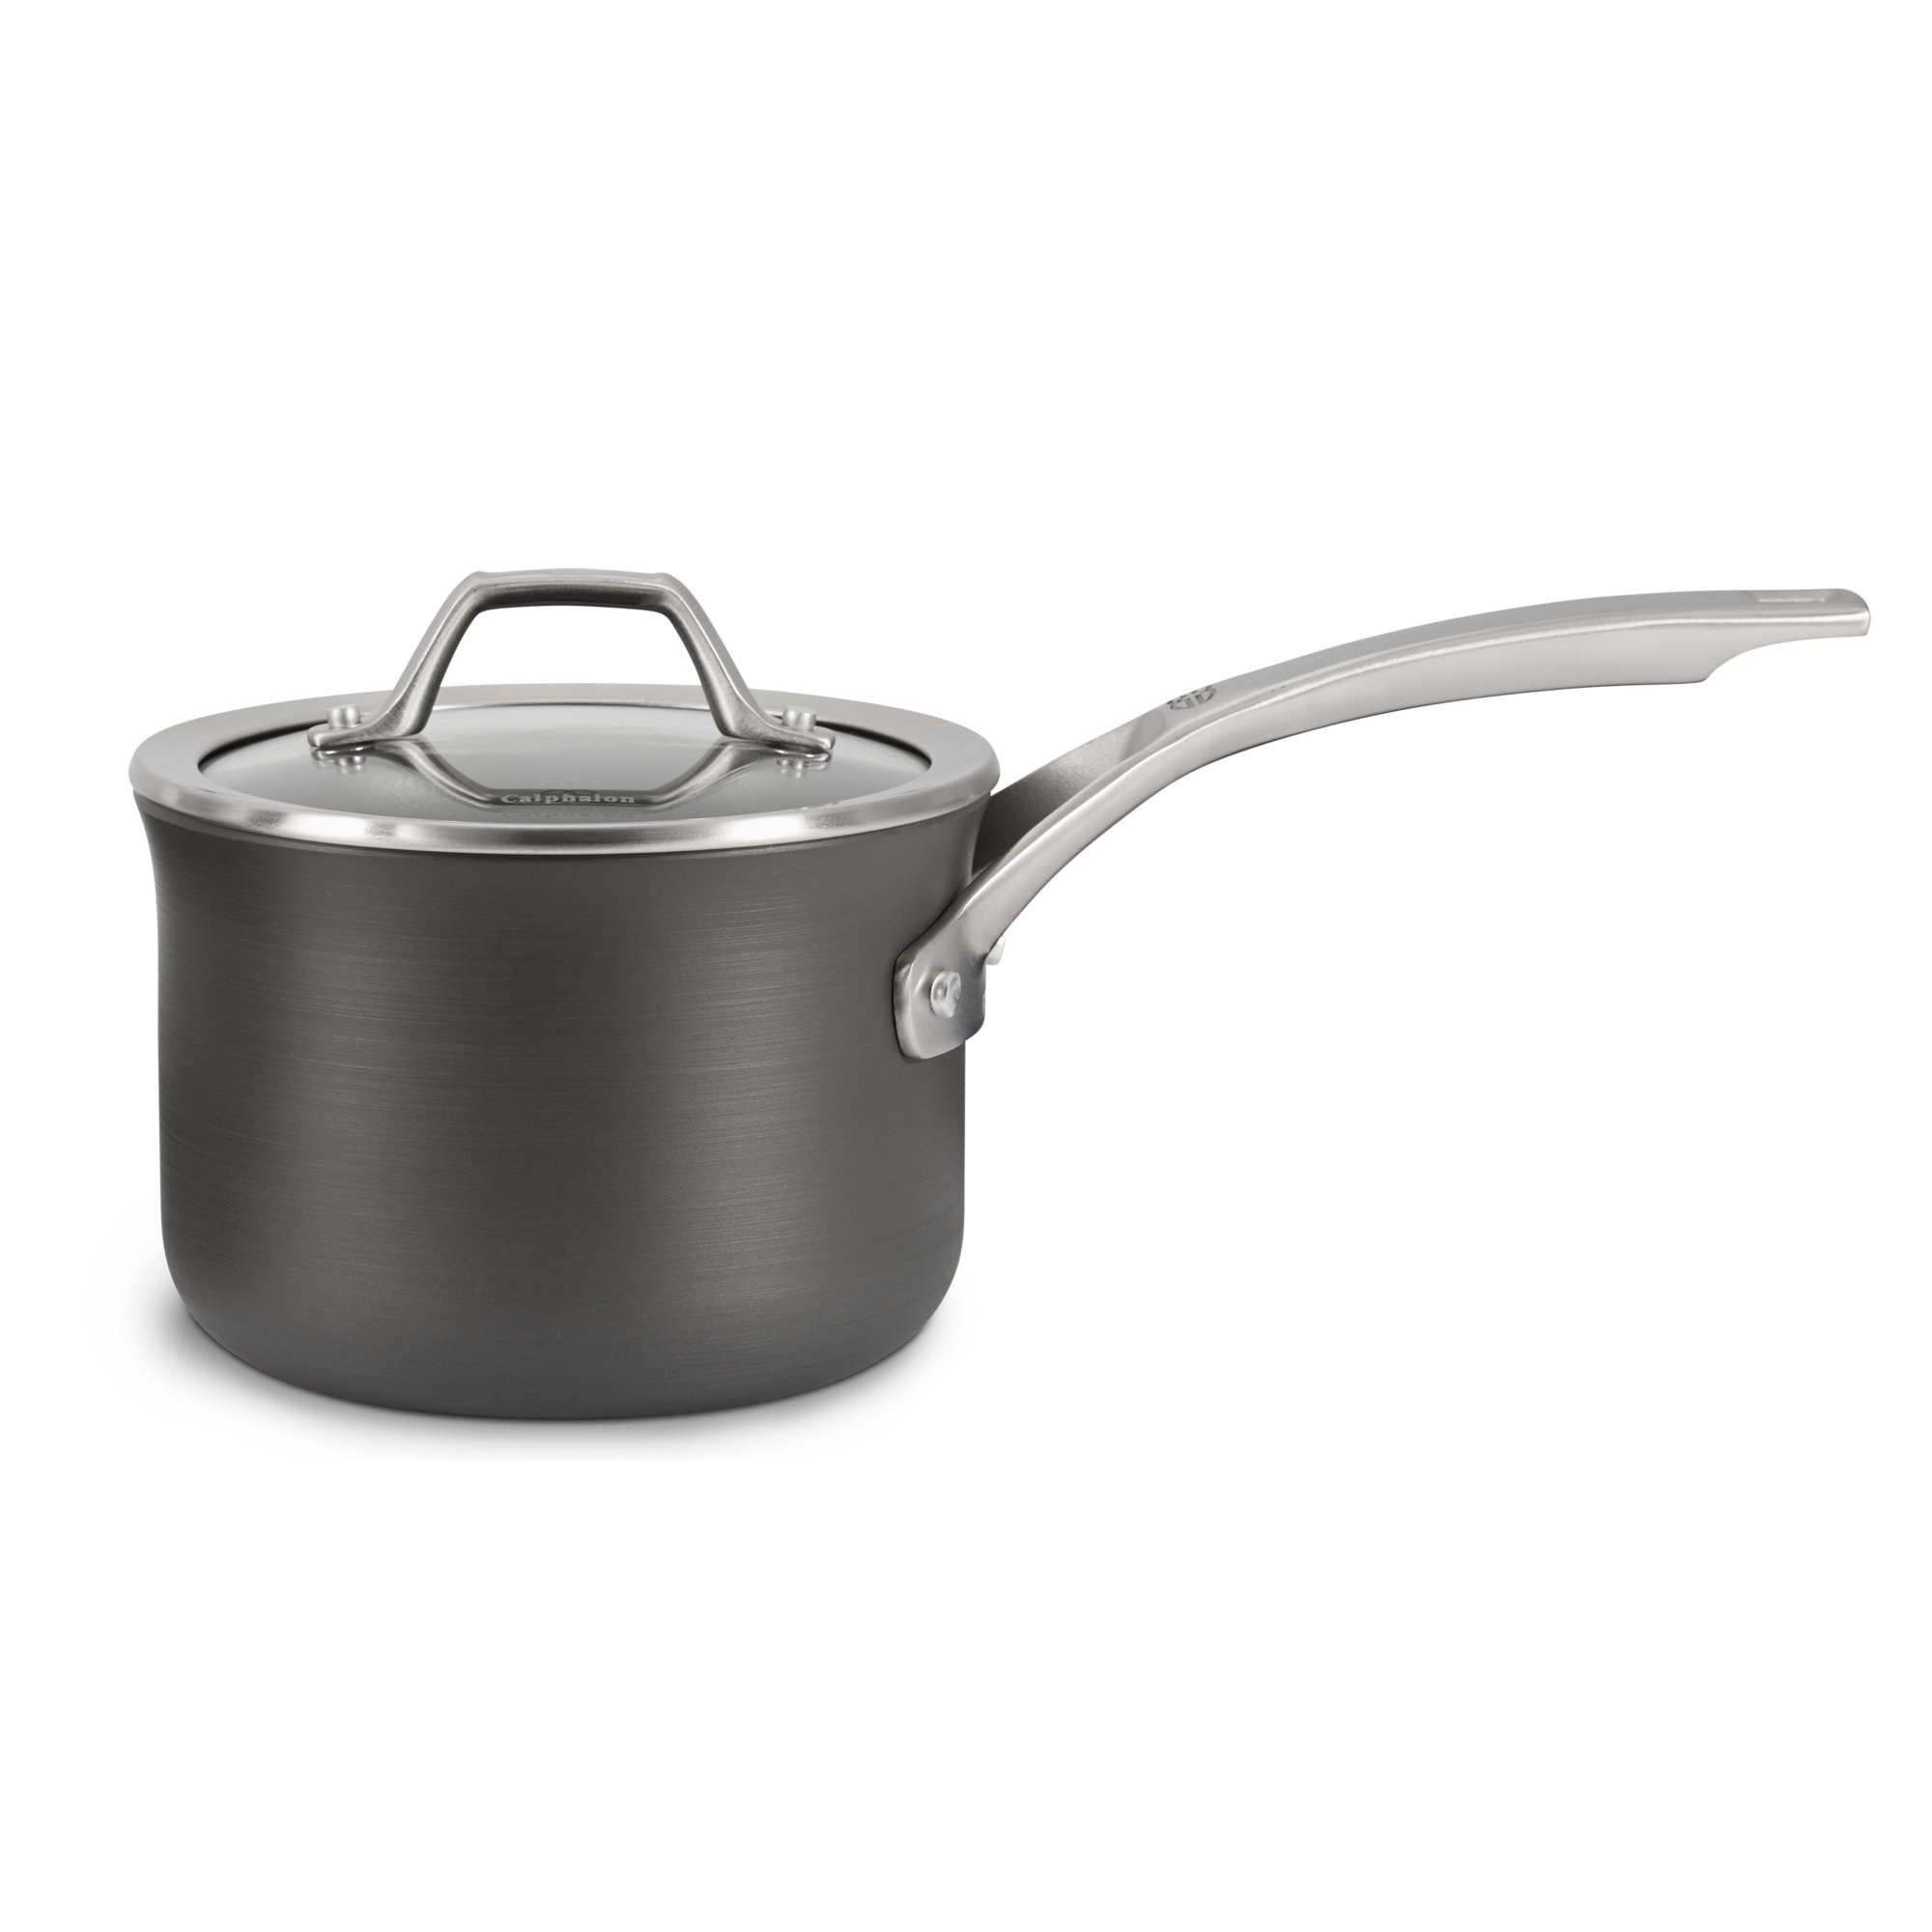 calphalon kitchen essentials stainless steel top signature nonstick 2 qt sauce pan with cover